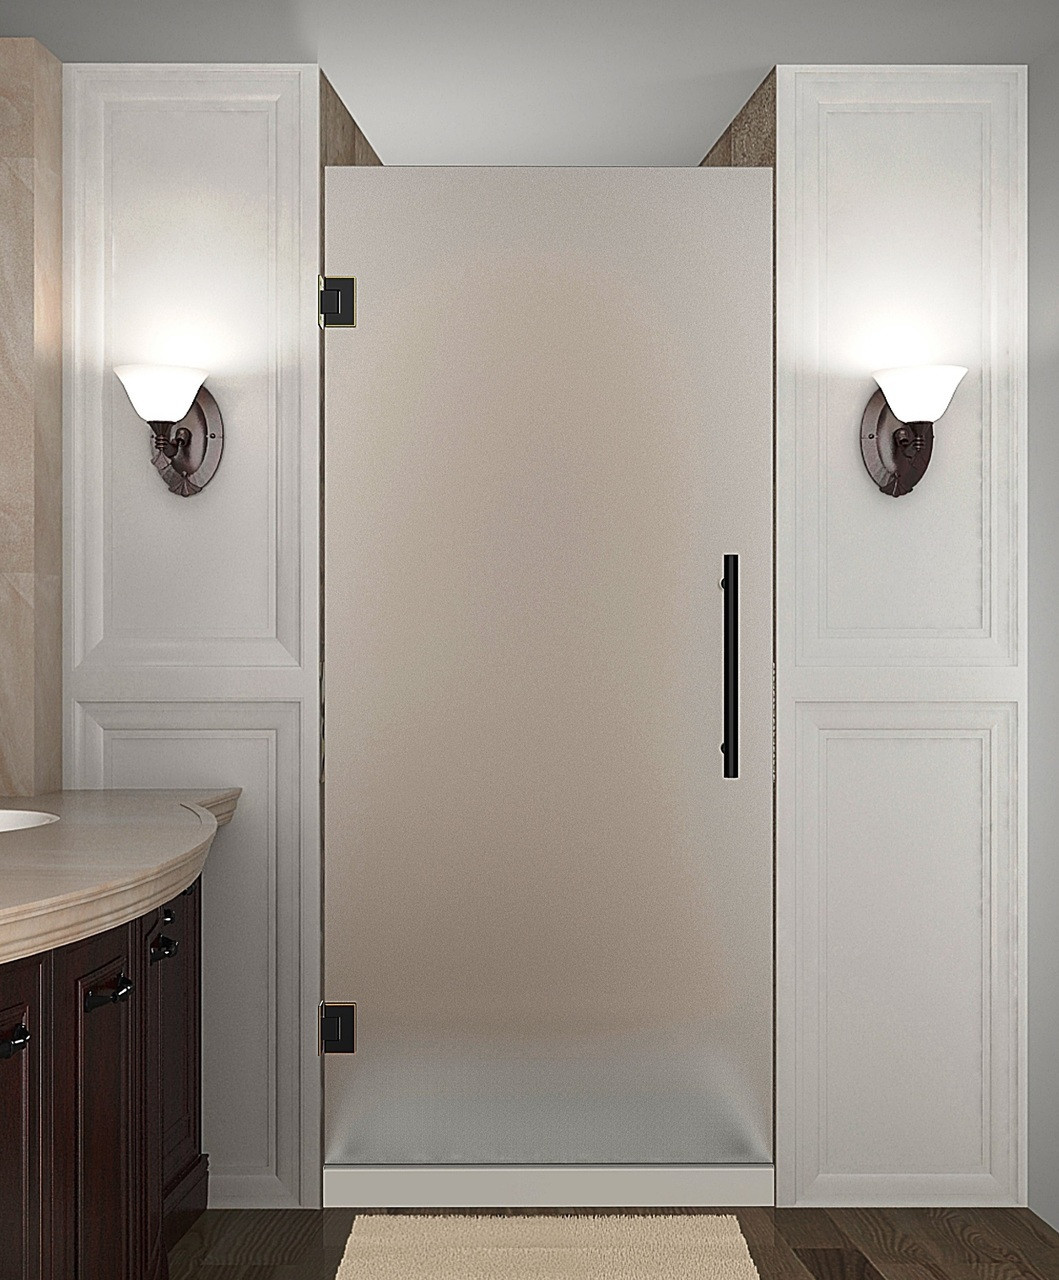 Aston SDR995F-ORB-25-10 Cascadia 25 In x 72 In Completely Frameless Hinged Glass Shower Door In Oil Rubbed Bronze